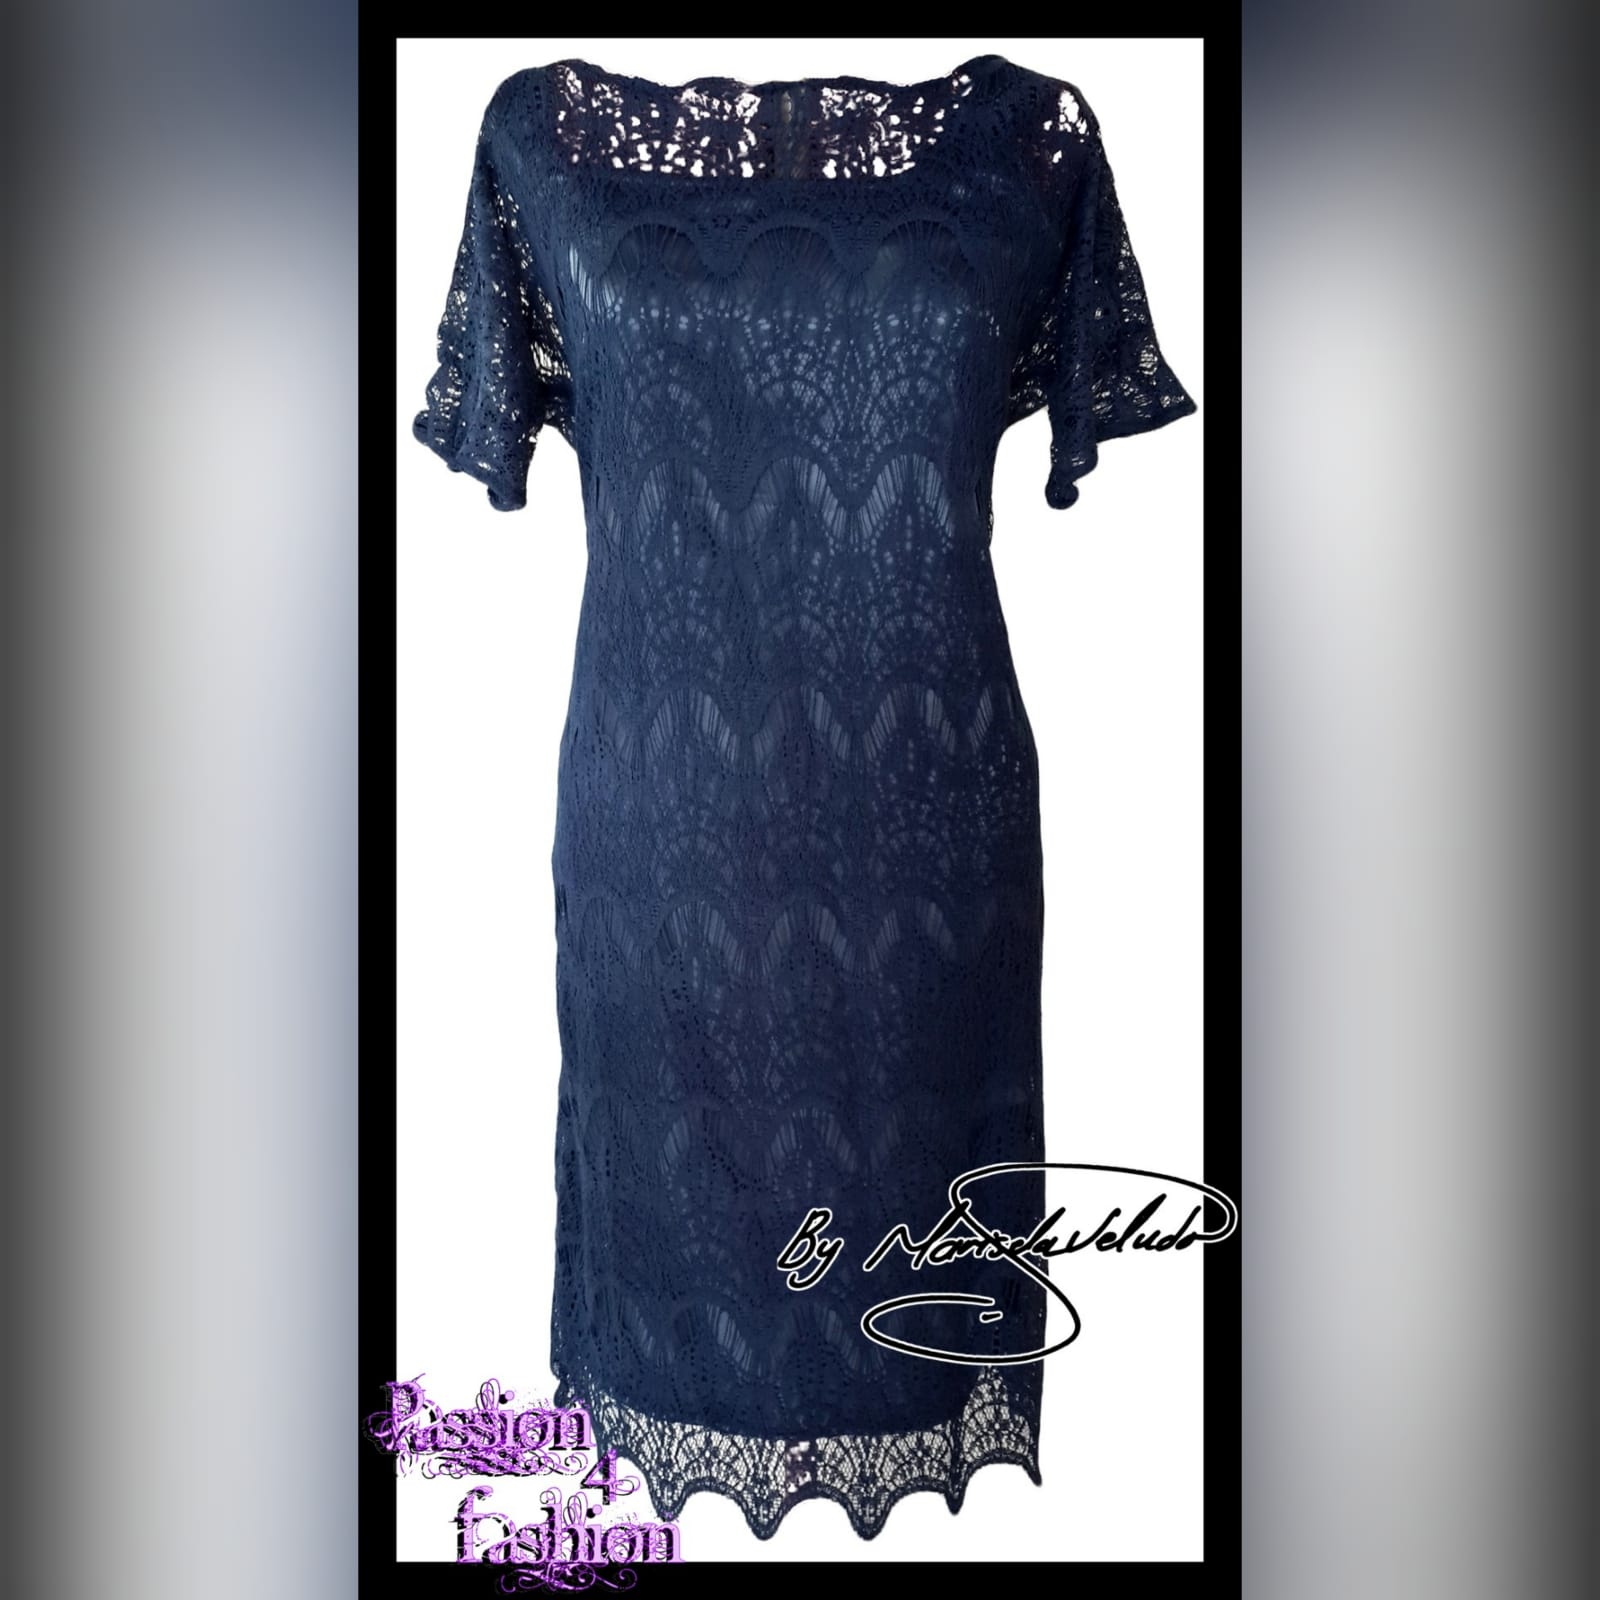 Navy blue short mother of the bride dress 1 navy blue short knee length mother of the bride dress, fully laced with a scallop hem and short sheer lace sleeves